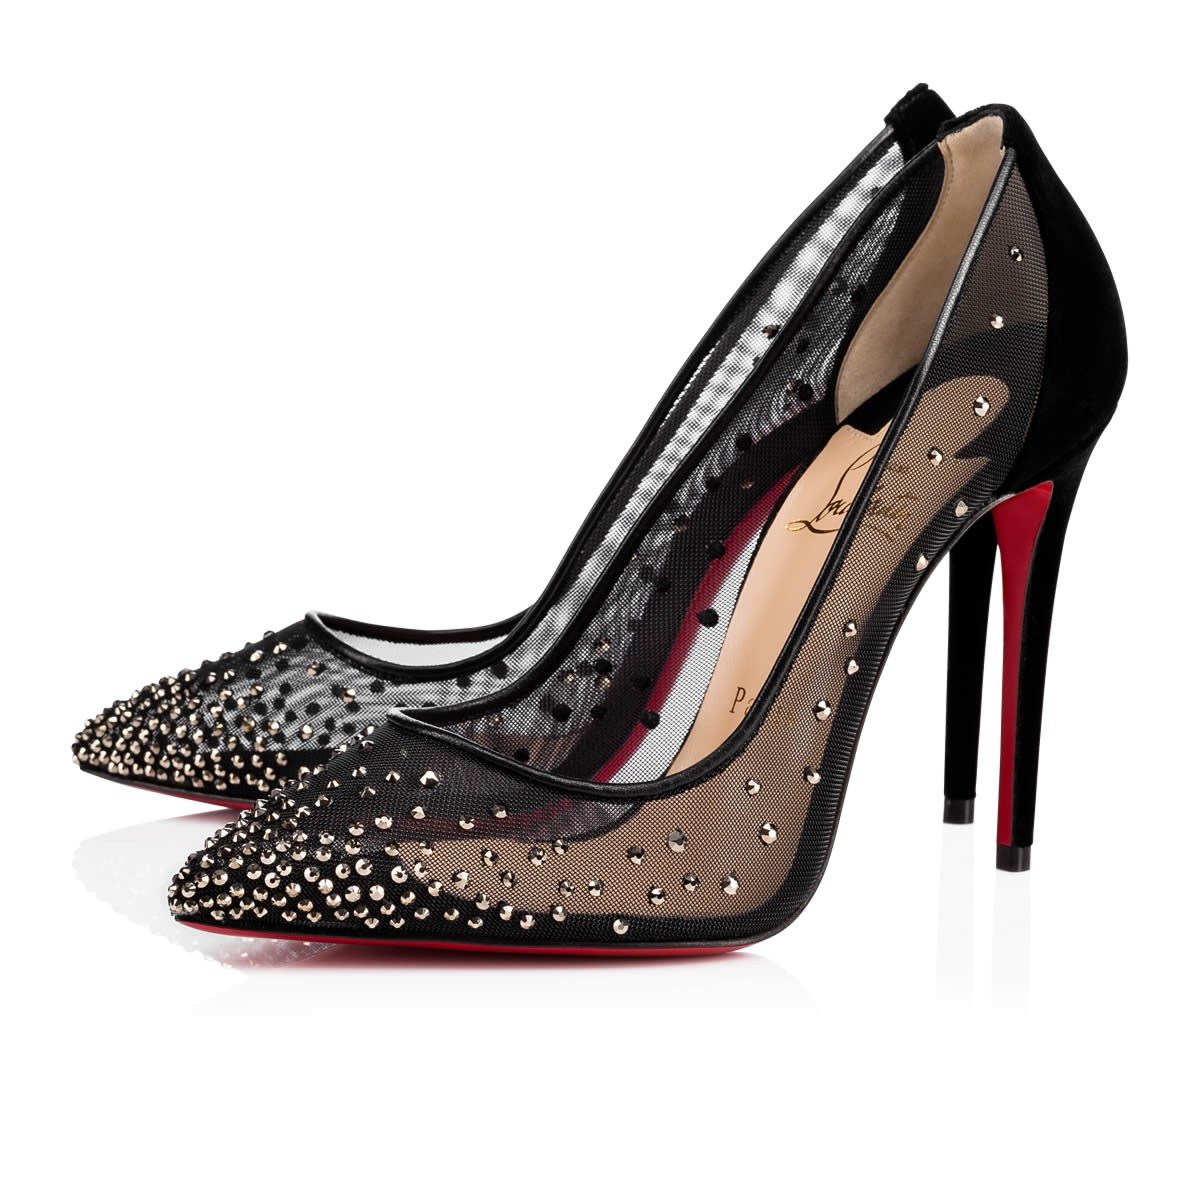 christian louboutin shoes crystal